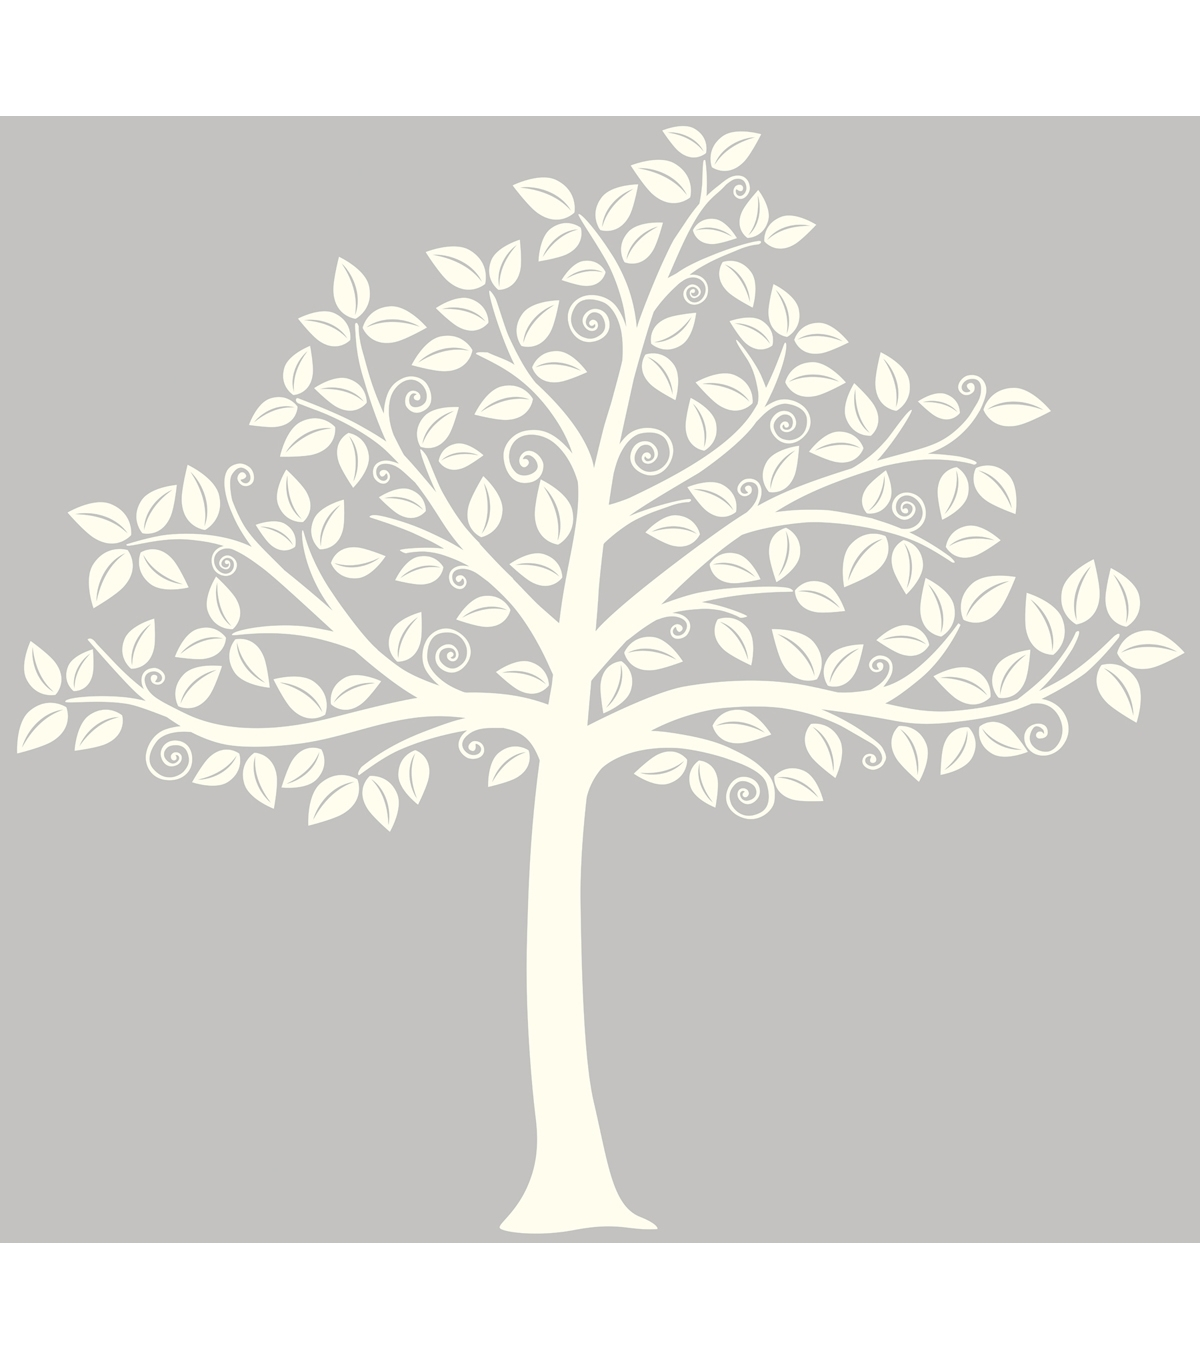 Joann Fabric Wall Art Pertaining To Recent Wall Pops Silhouette Tree Wall Art Decal Kit, 129 Piece Set (View 7 of 15)